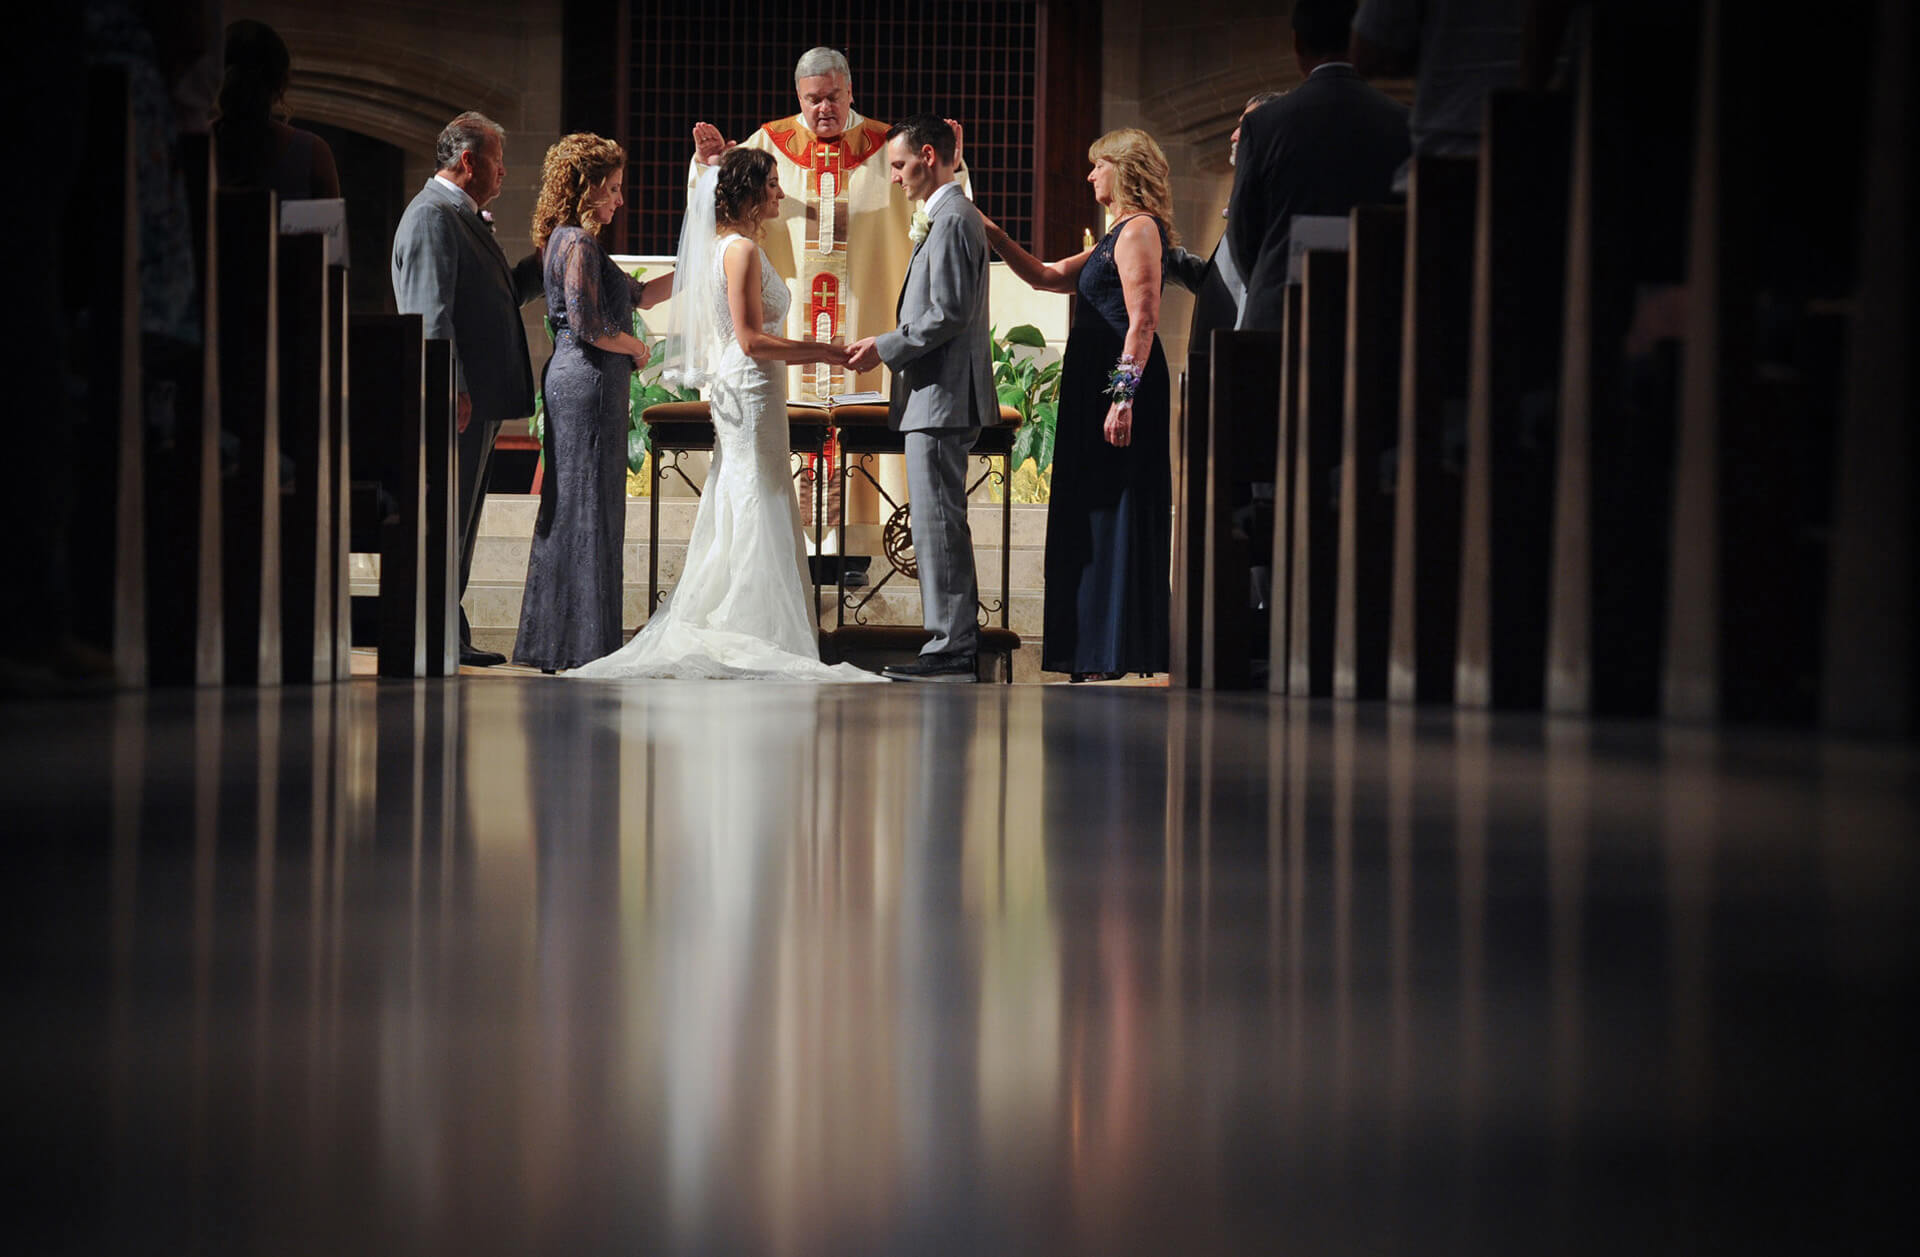 The bride and groom receive blessings from their families during their downtown Detroit, Michigan wedding ceremony.